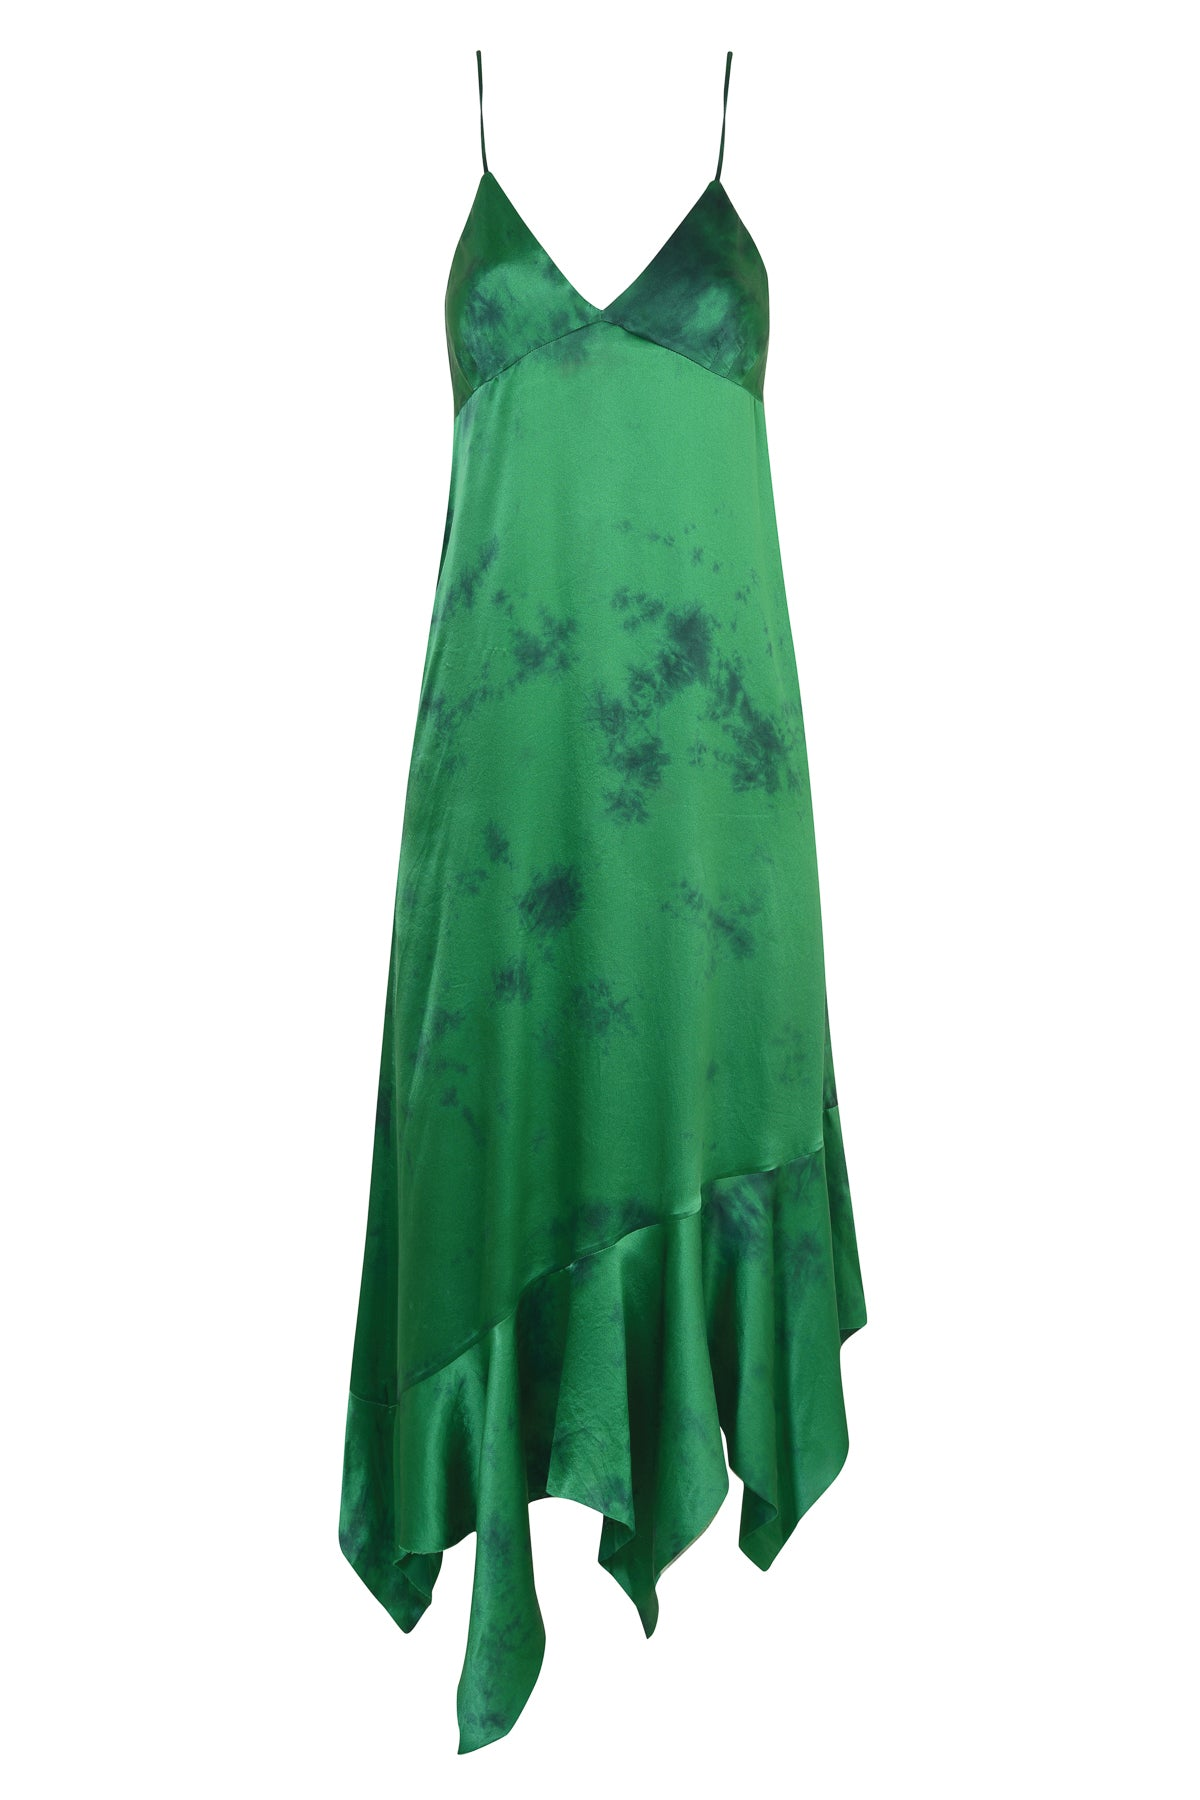 SILK GREEN TIE DYE DRESS